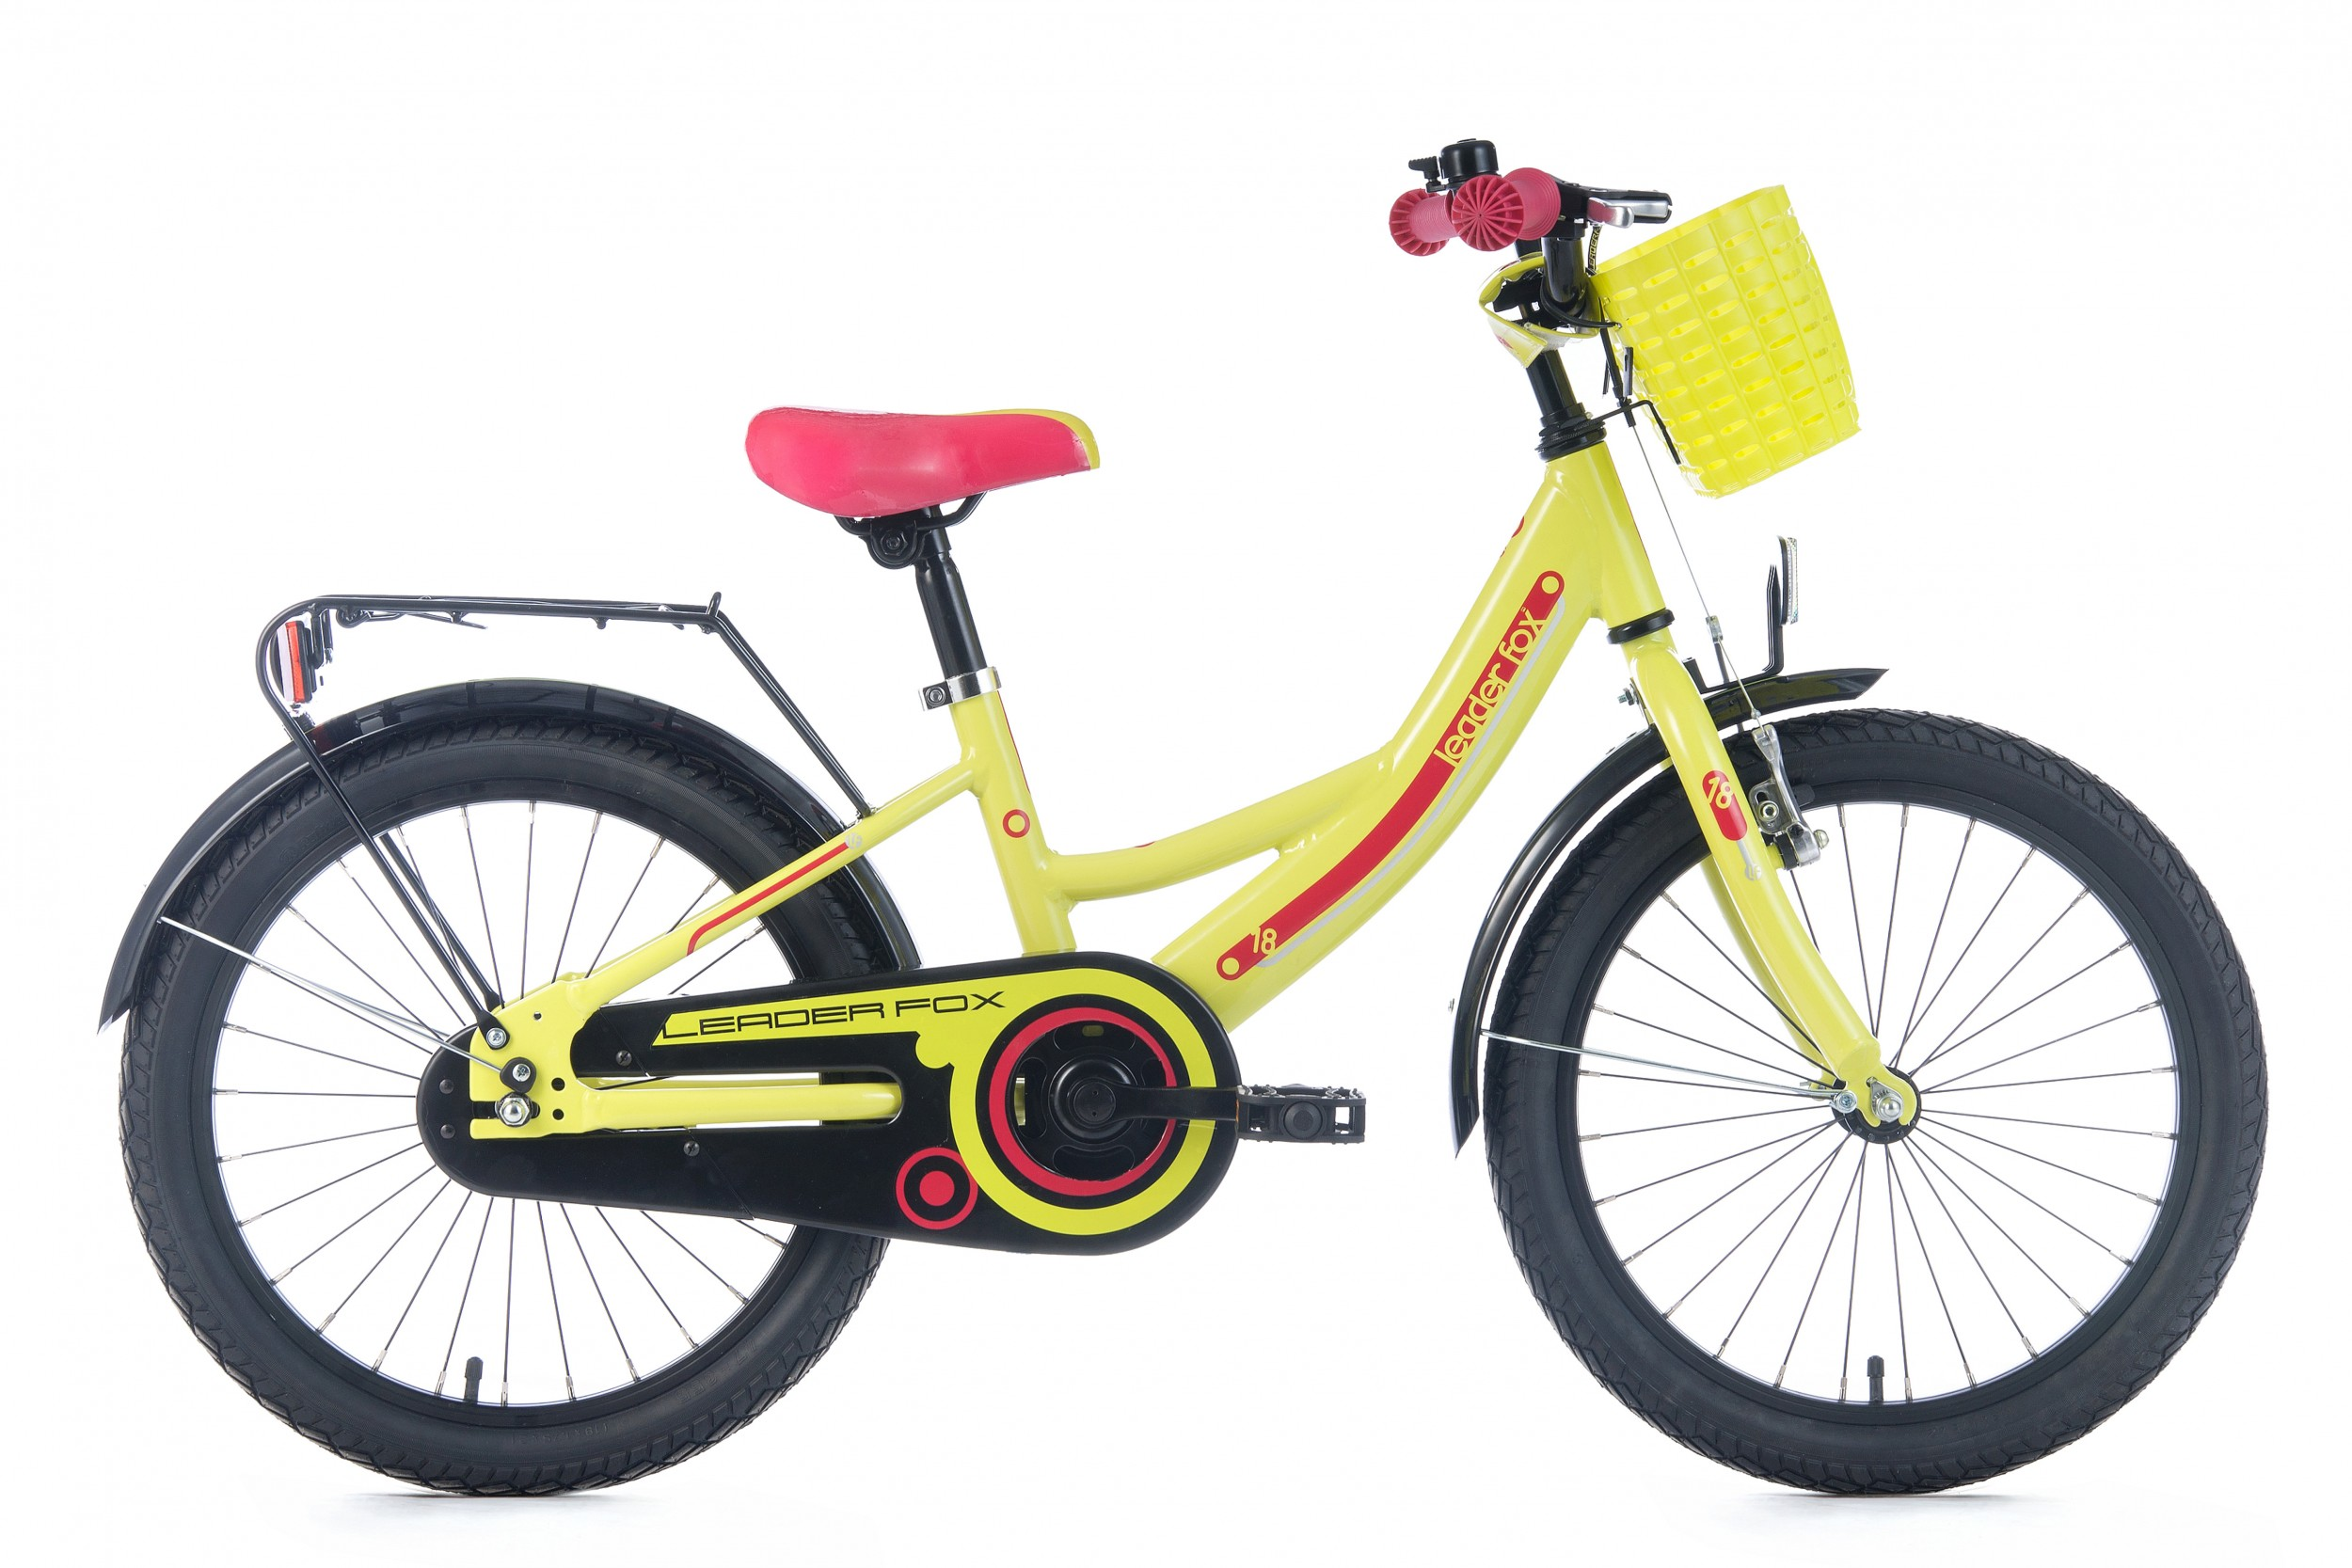 Leader Fox Busby Girls Bicycle 18 Inch 25cm - Green